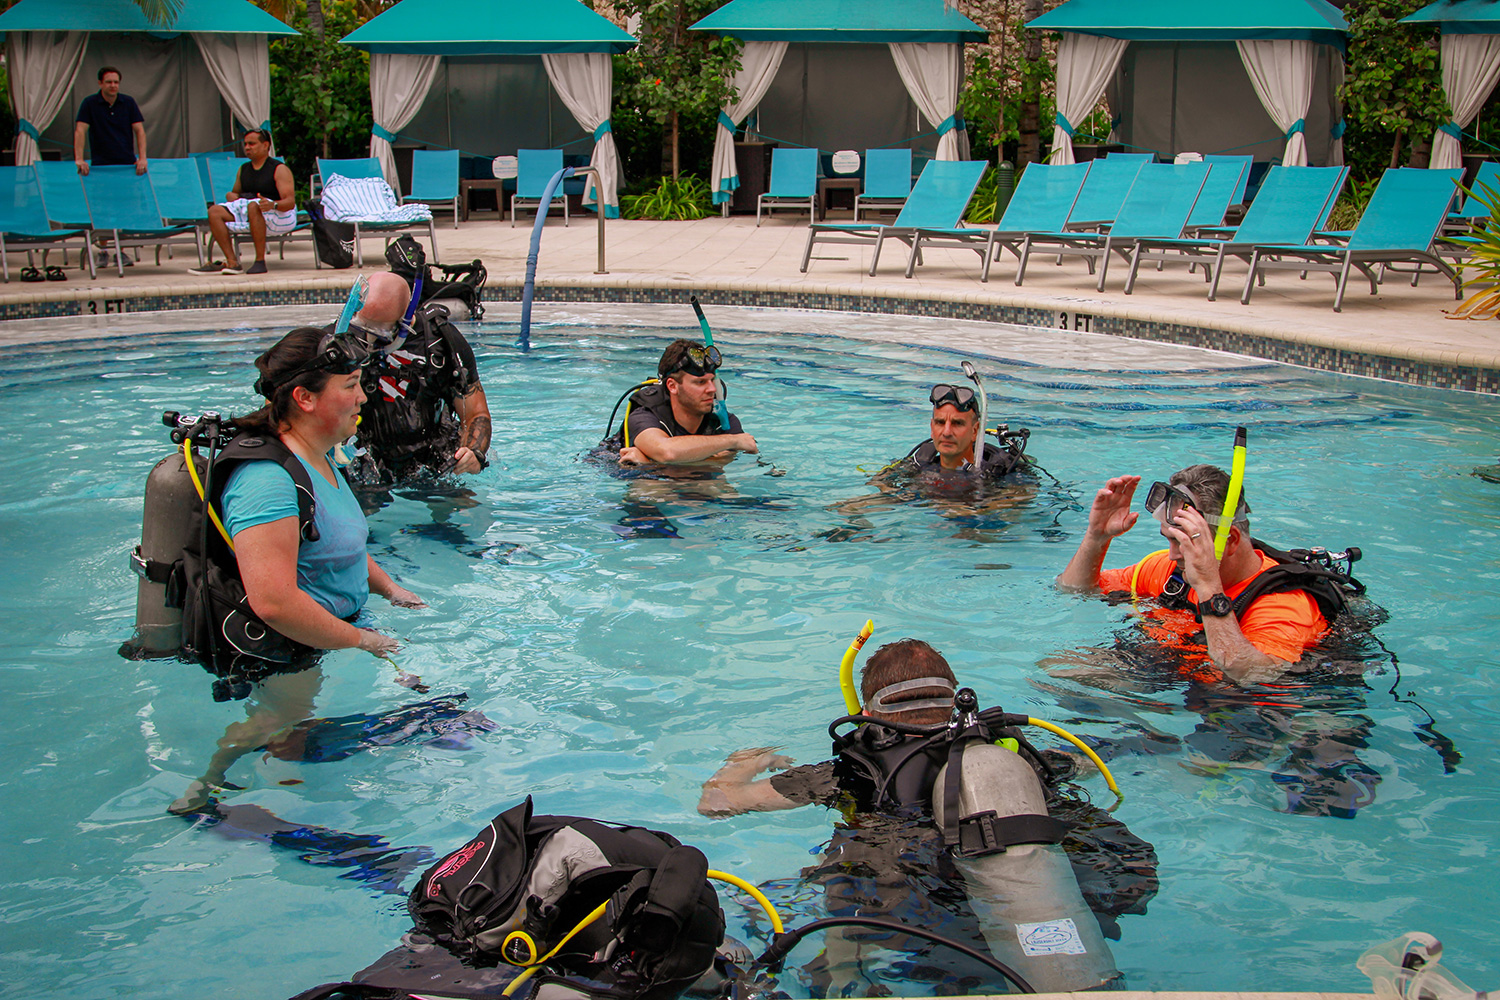 Simplify attendees during the scuba diving pool training session